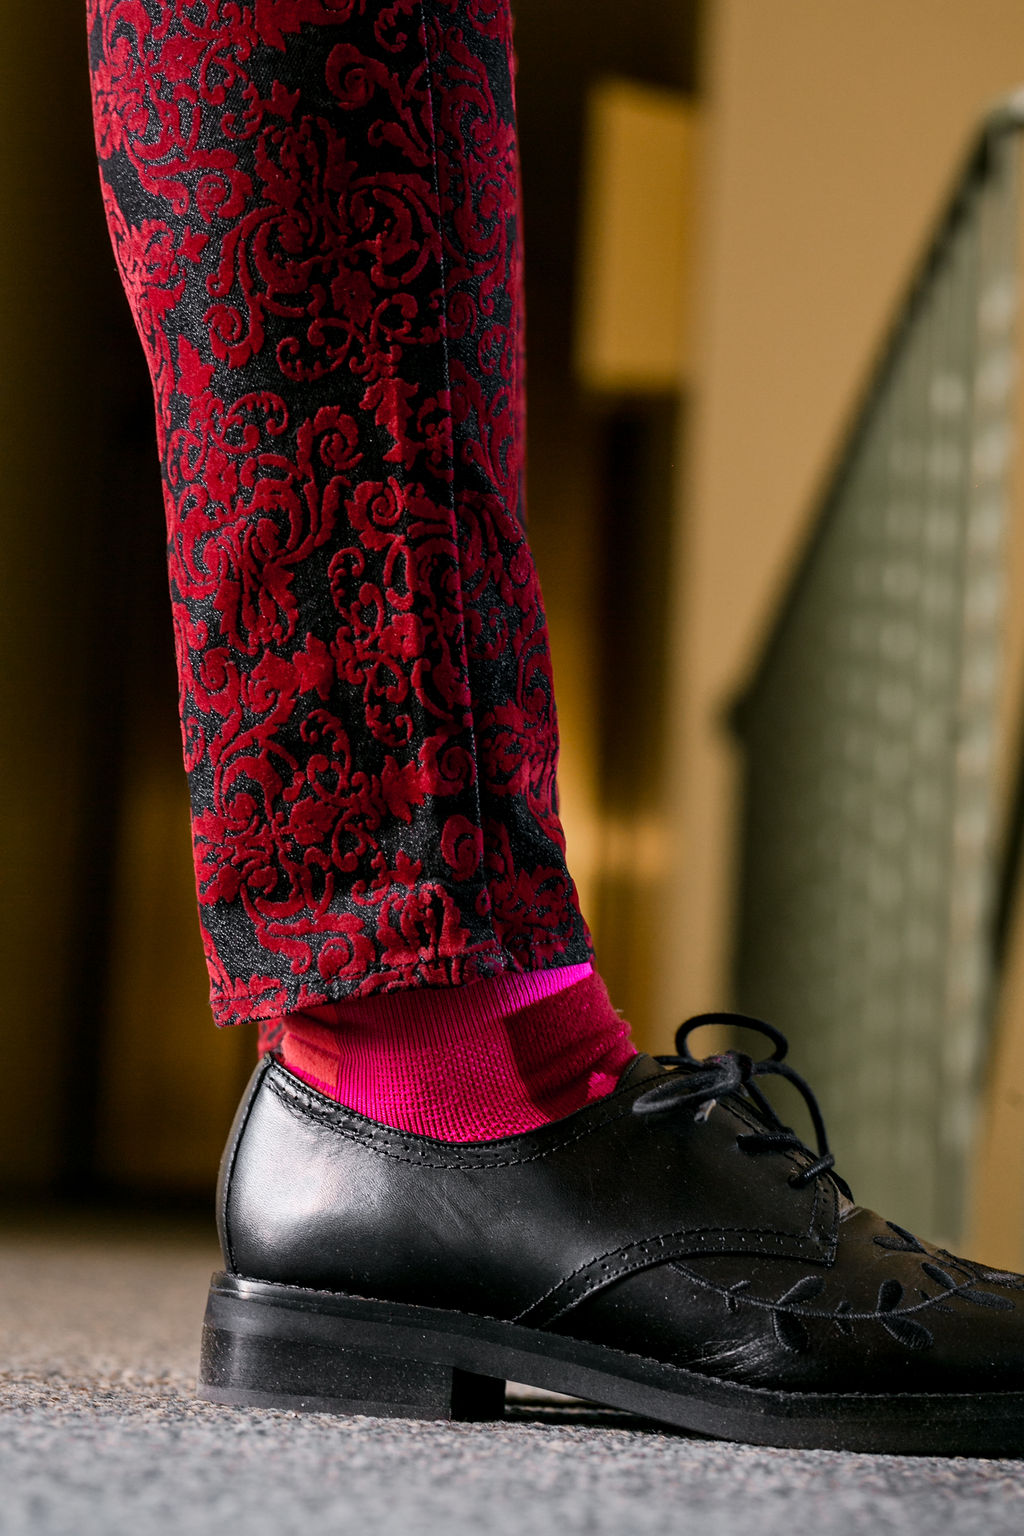 RSEE-LCM-Liveclothesminded-xmmtt-longbeach-2484-christmas outfit idea - red + pink - trend 2019 - dress shoes - pink socks - athletic socks - how to wear fun socks - cool sock